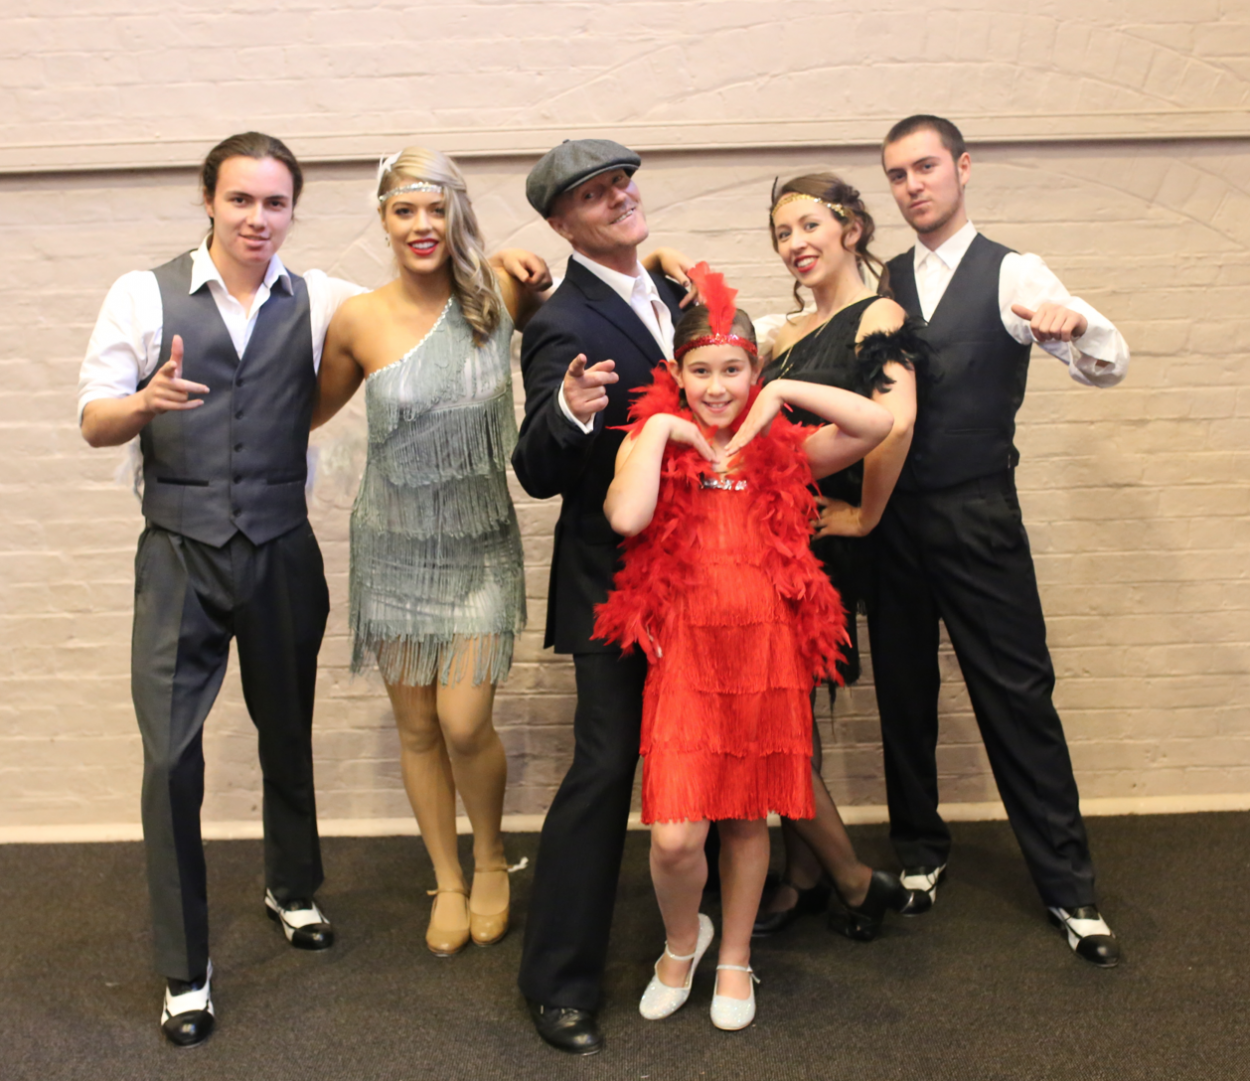 Rhythm Tap Melbourne - Great Gatsby show